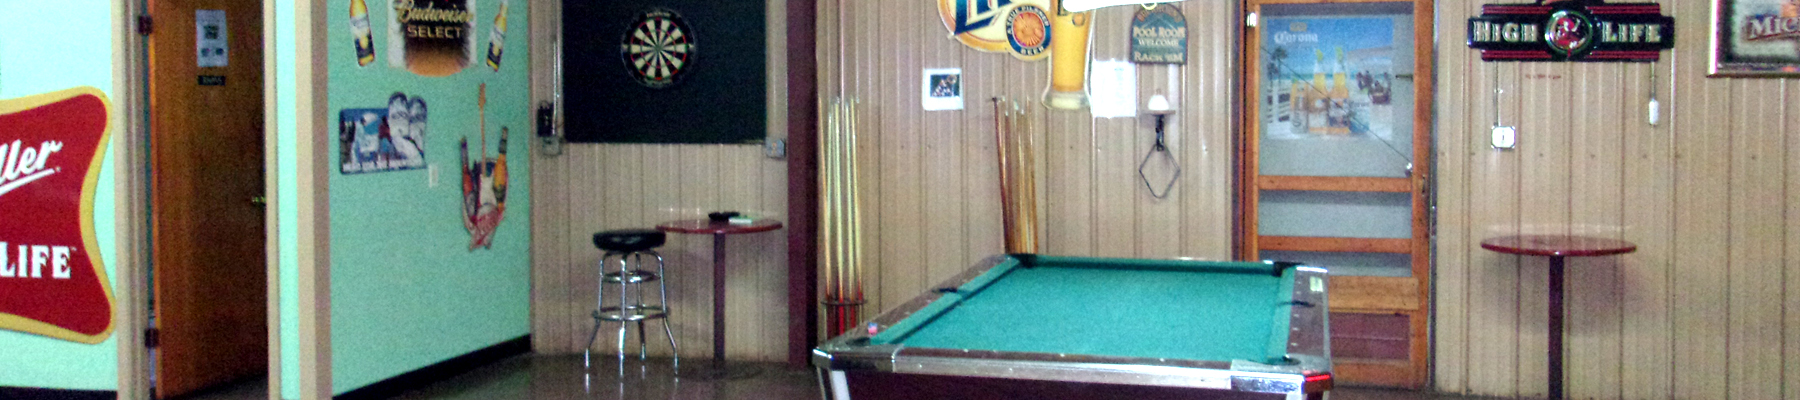 Pool, Darts and Air Hockey!  - Tuesday Night Pool Tournament - $5.00 Entry!